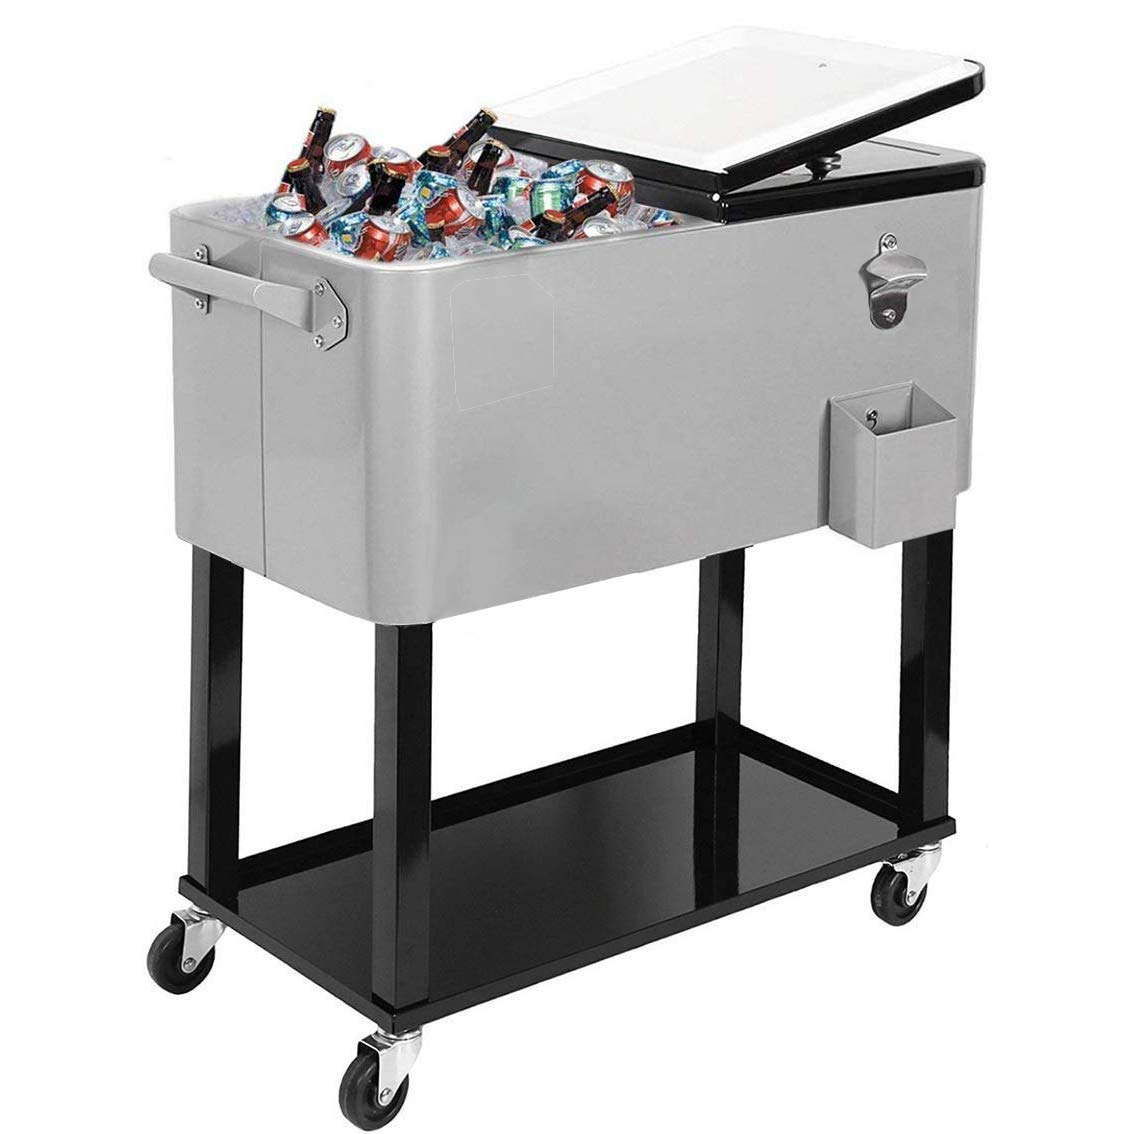 JOYBASE 80 Quart Rolling Ice Chest, Portable Patio Party Bar Drink Cooler Cart, with Shelf, Beverage Pool with Bottle Opener by JOYBASE